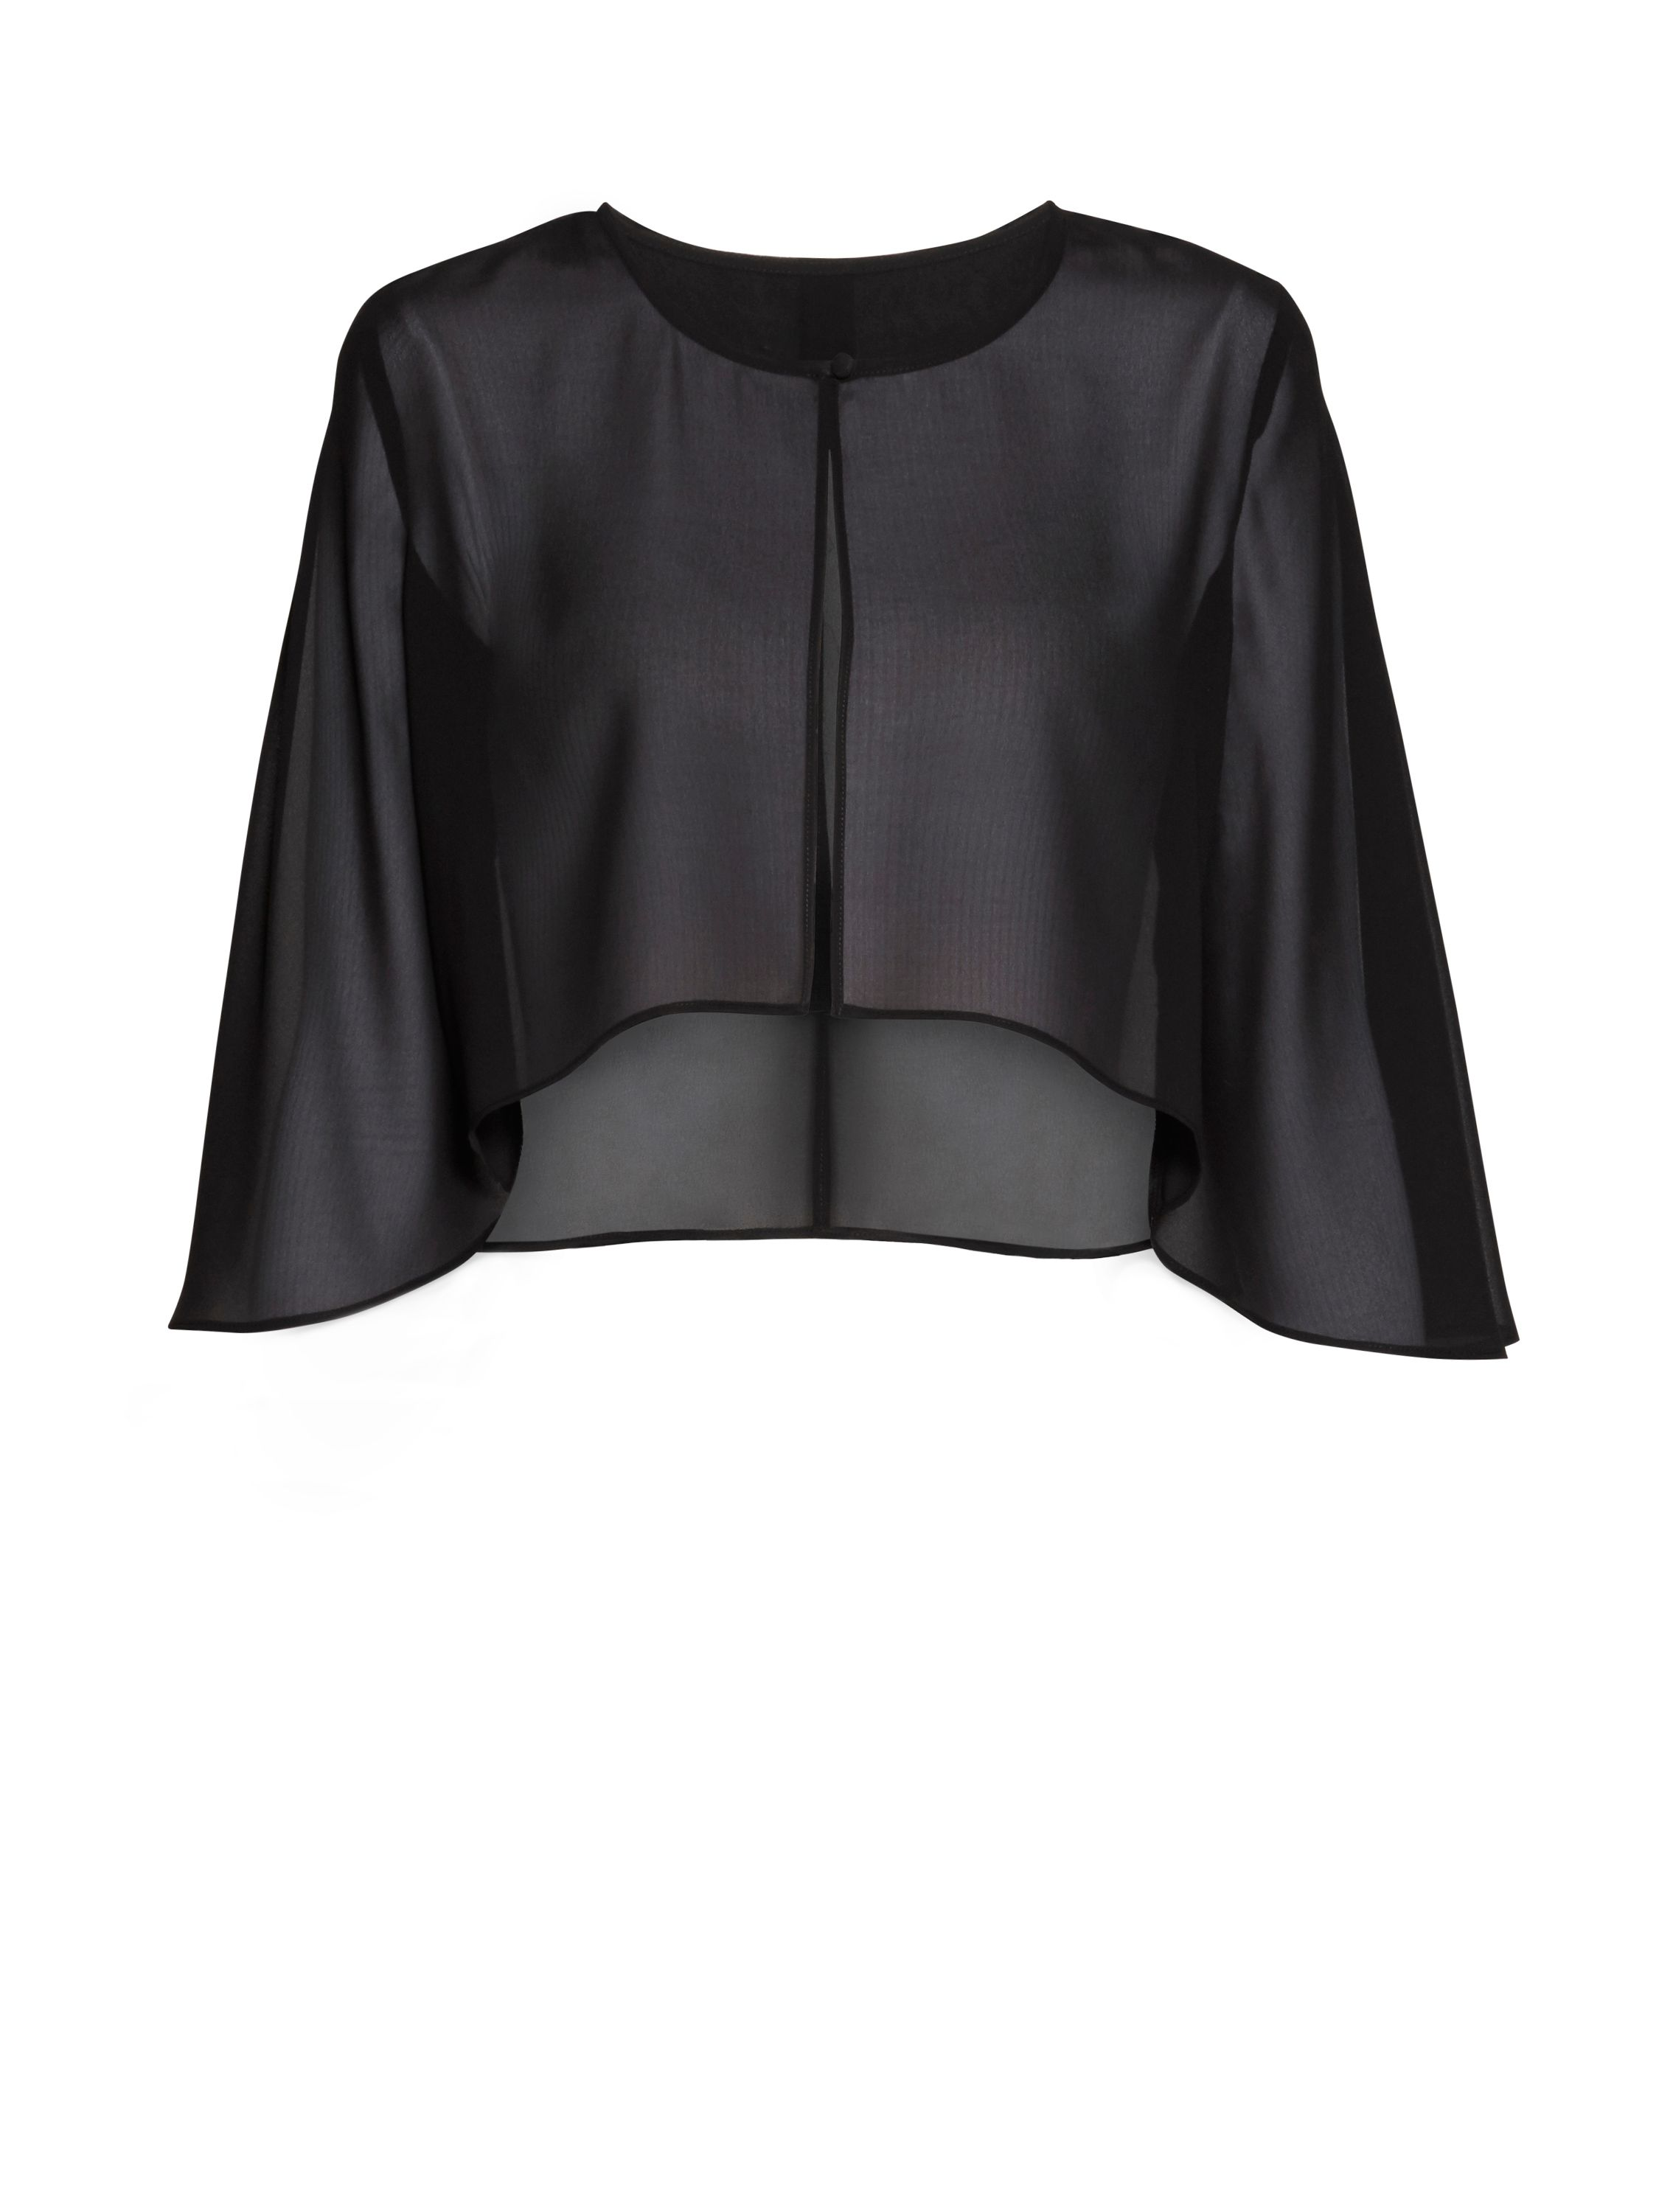 Gina Bacconi Chiffon cape with open back detail, Black